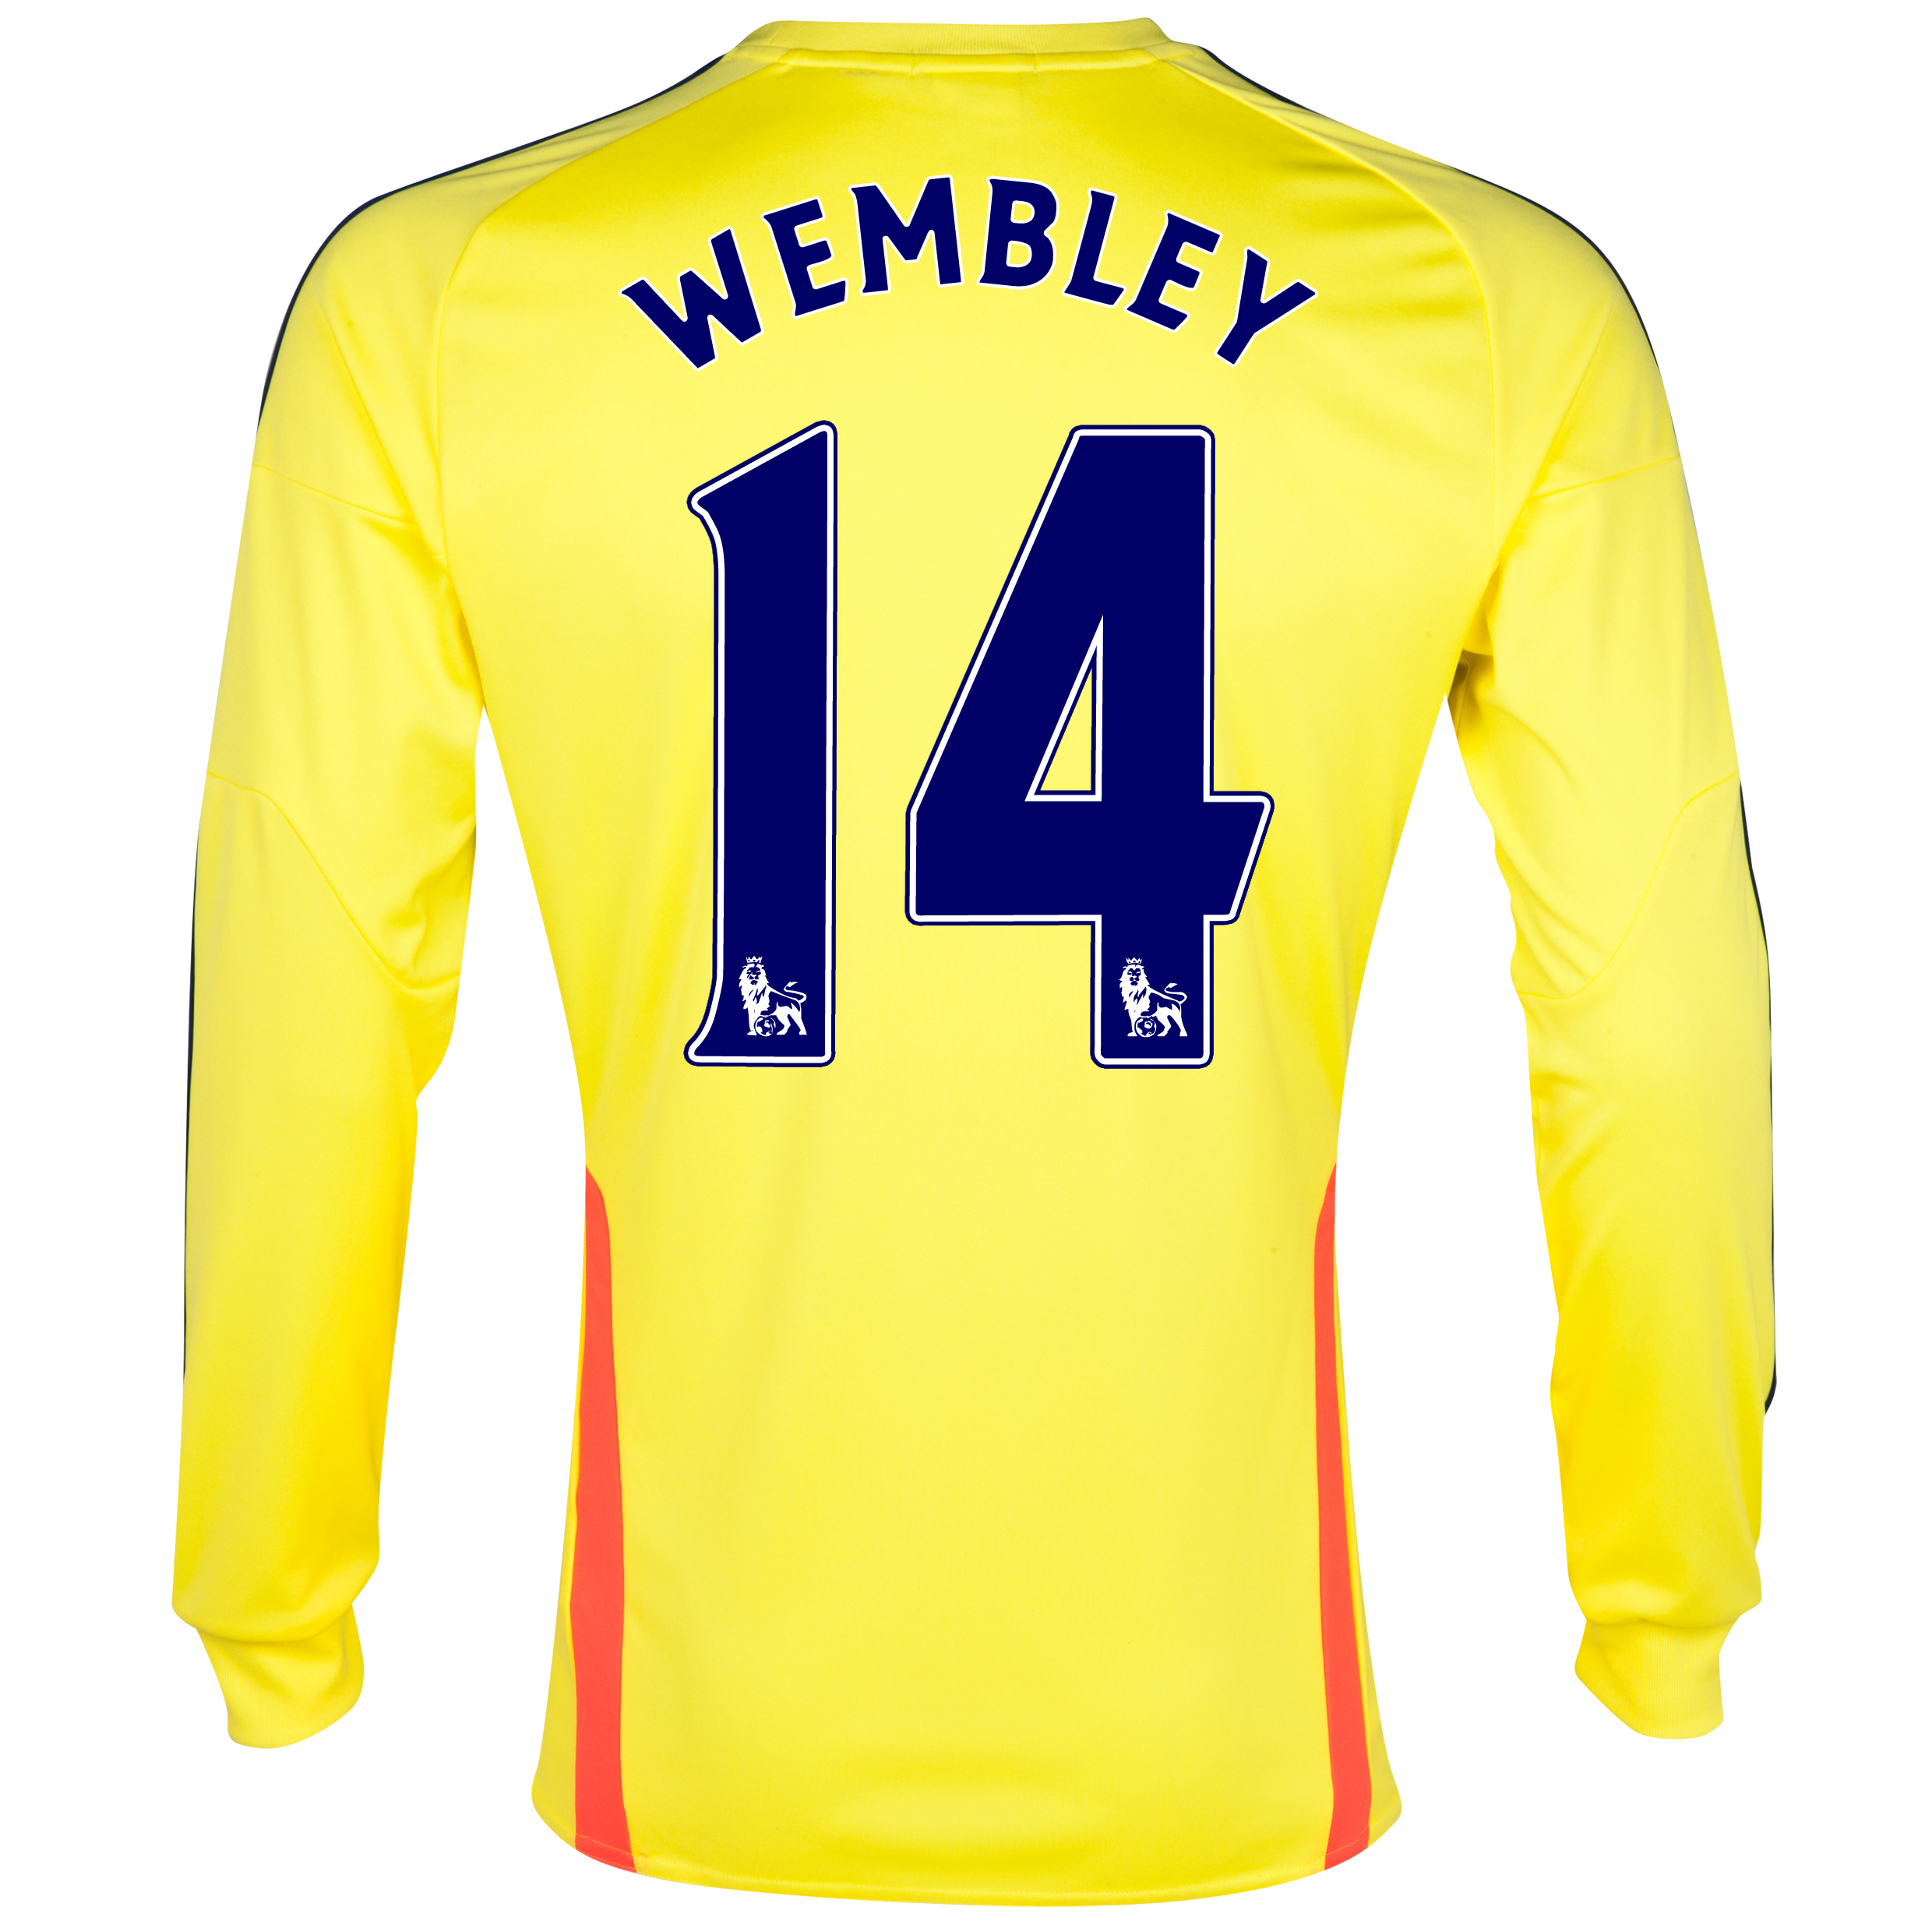 Sunderland Away Shirt 2013/14 - Long Sleeved with Wembley 14 printing